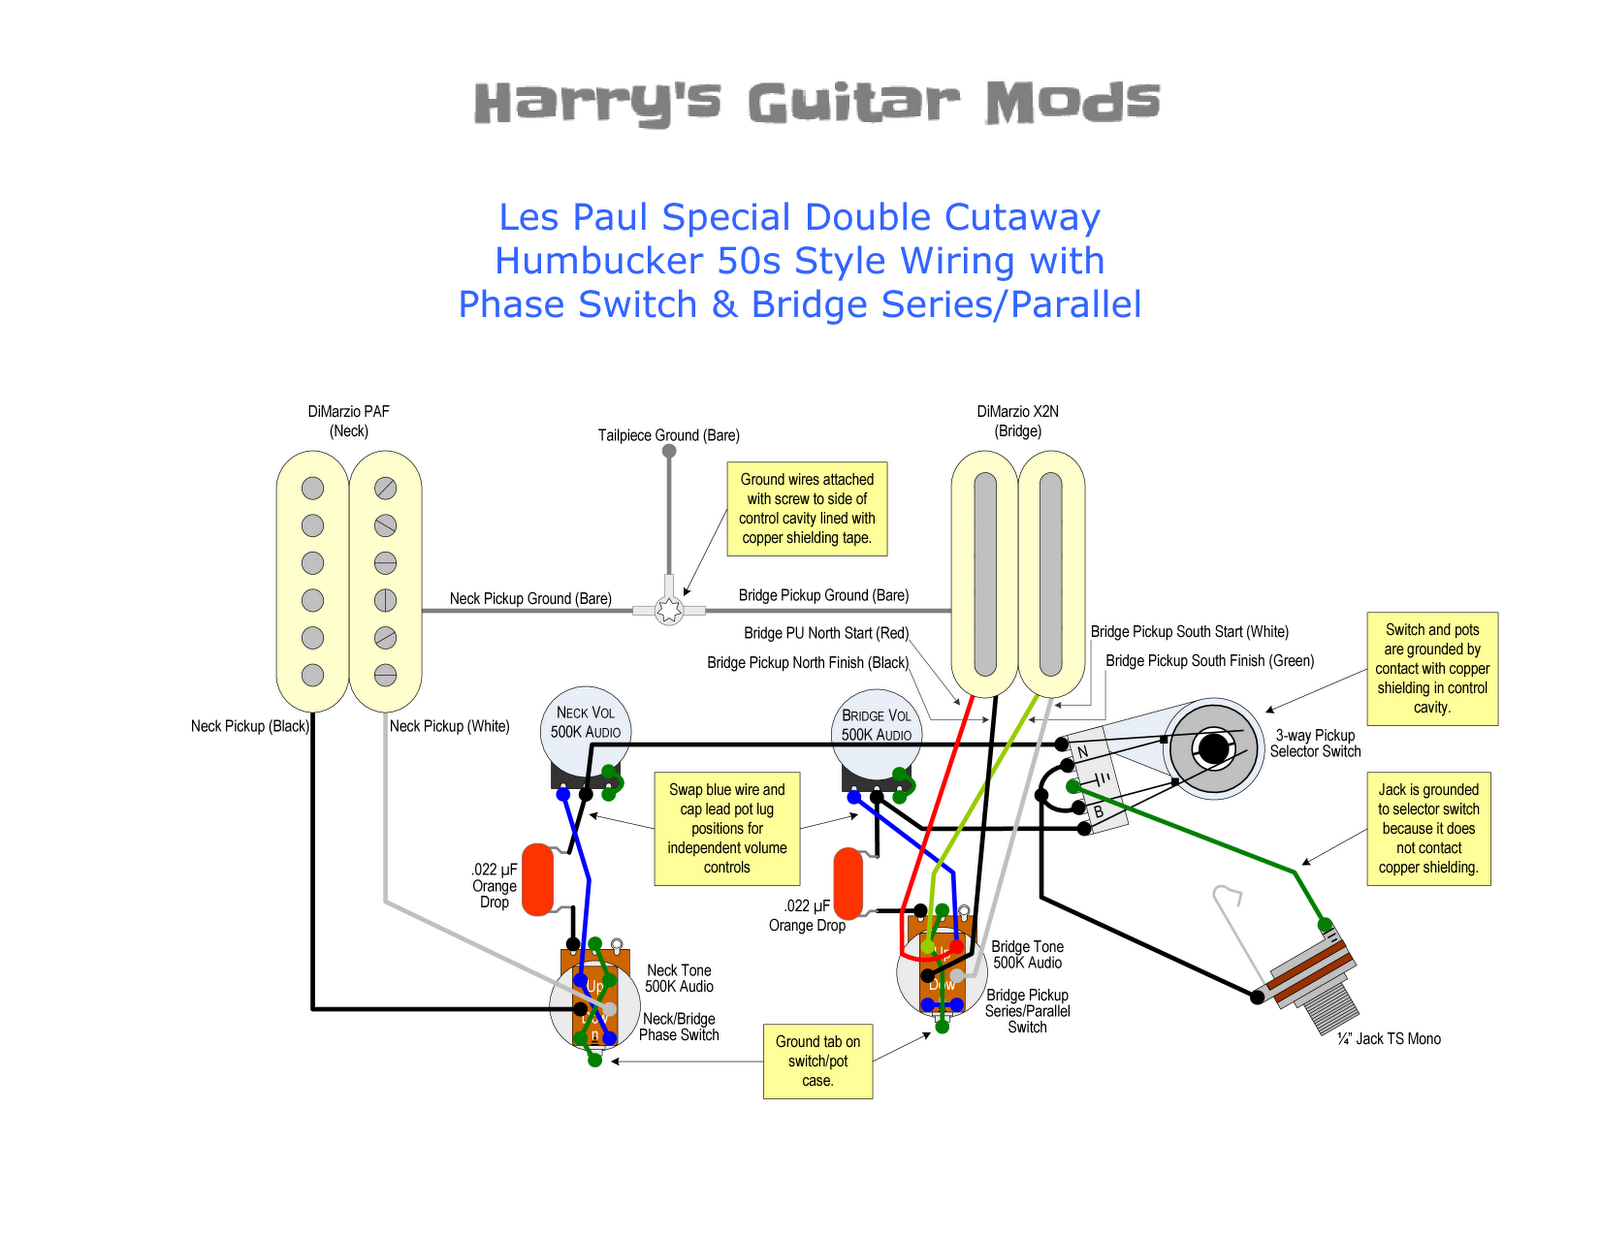 LPS+Wiring+Diagram harry's guitar mods controls wiring upgrade dimarzio les paul wiring diagram at readyjetset.co